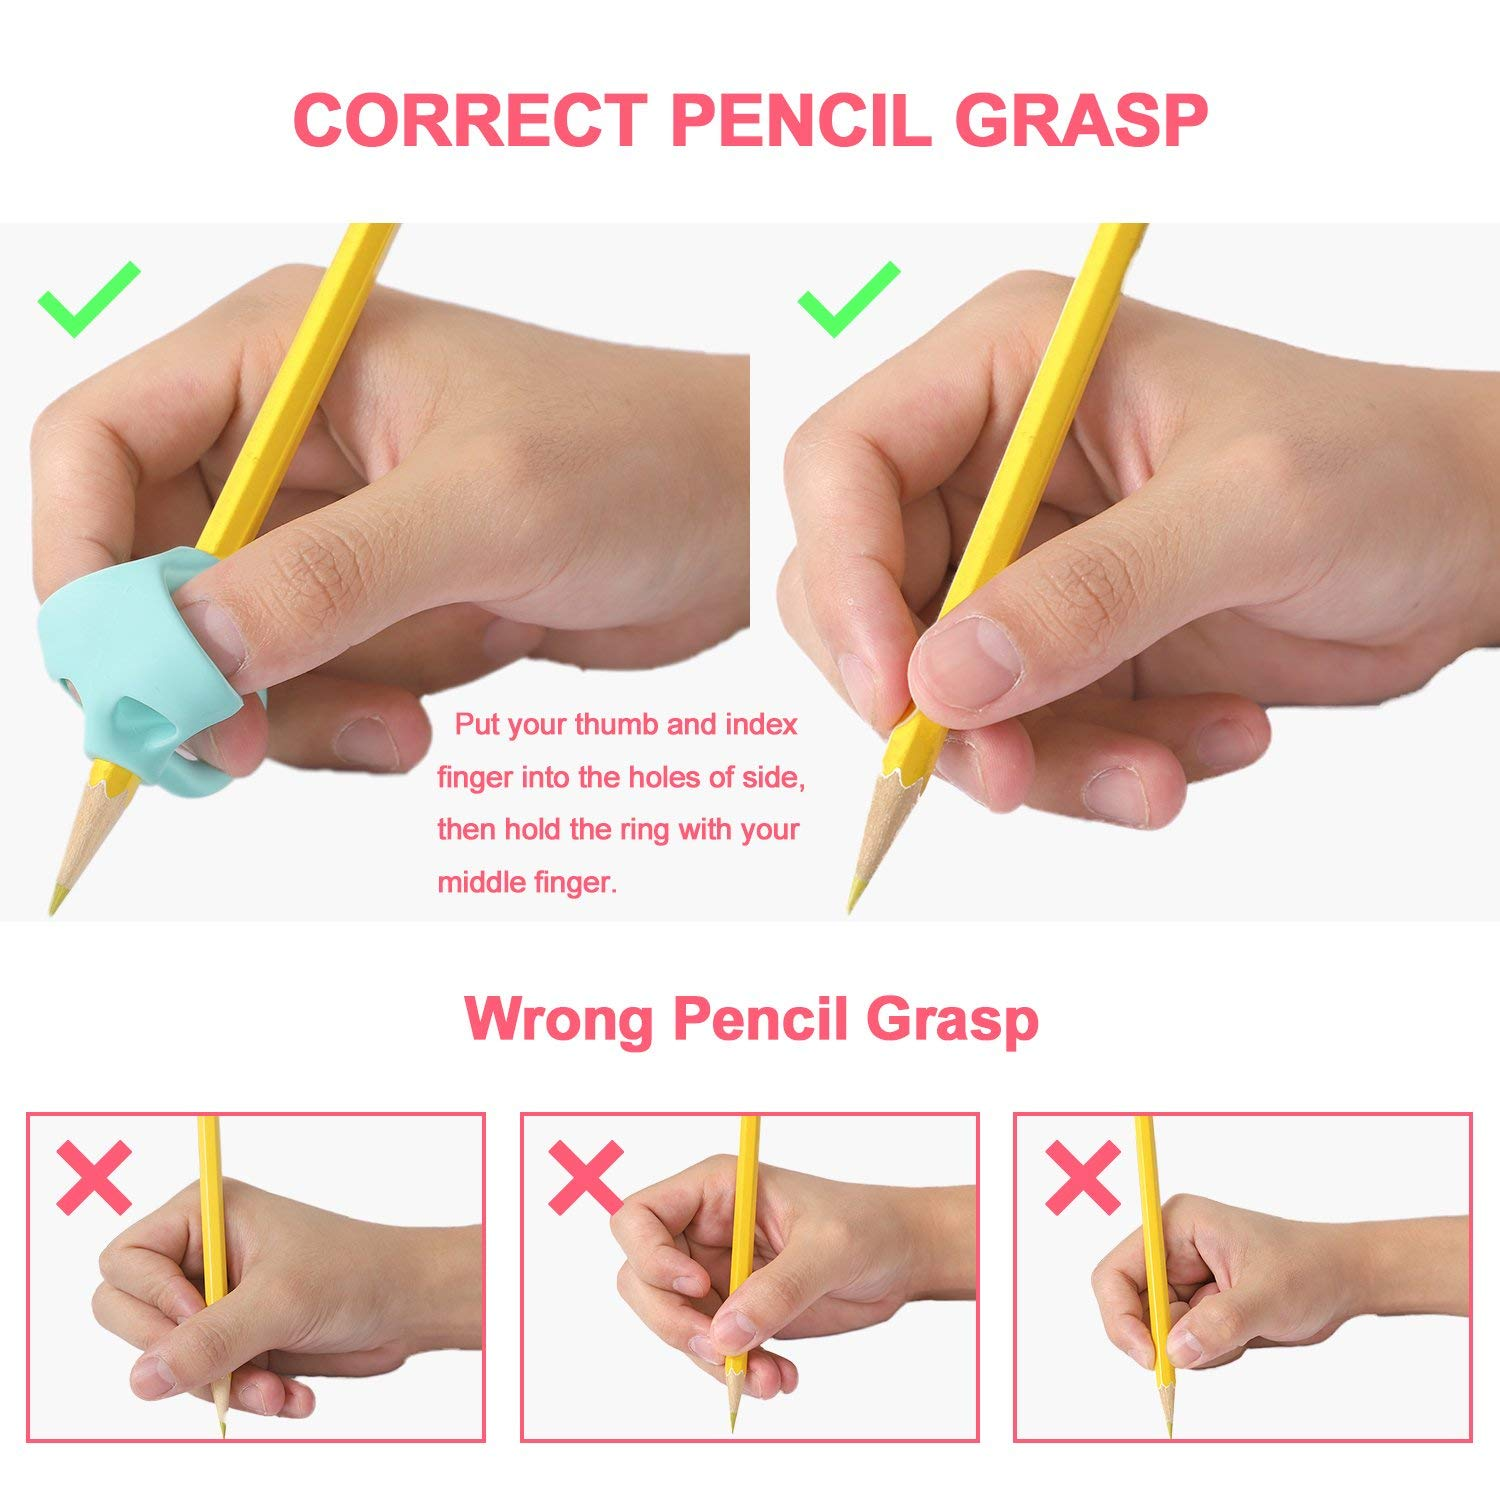 4 Packs Pencil Grips For Kids Child Handwriting Aid Grip Trainer Posture Correction Finger Grip For Kids Arthritis Designed For Righties Or Lefties Pencil Grips Adults